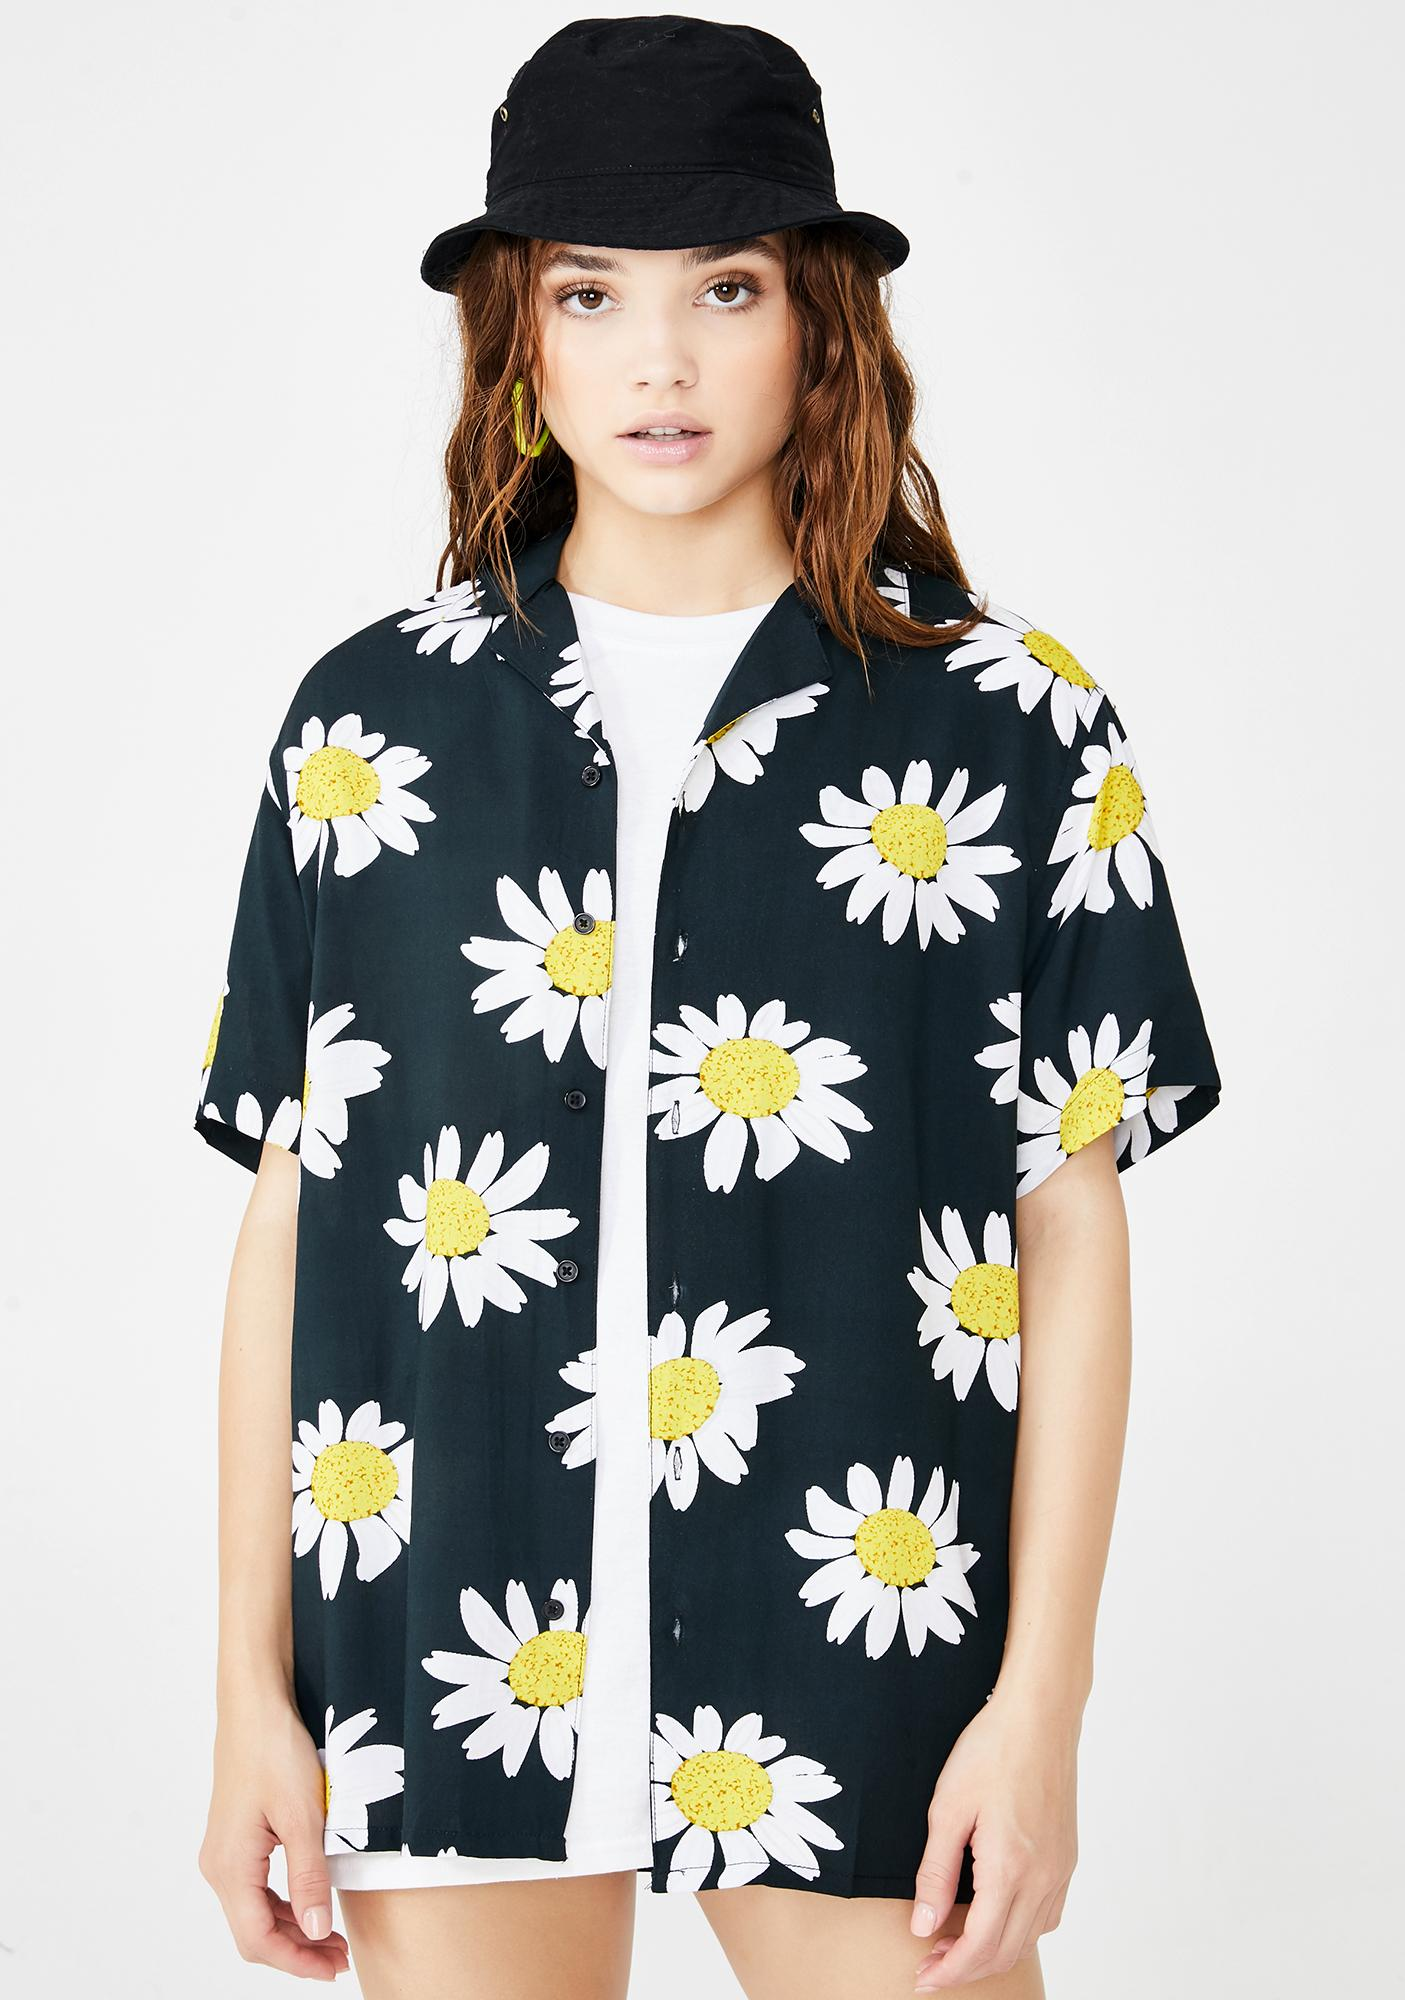 Petals and Peacocks Daisies Vacation Shirt